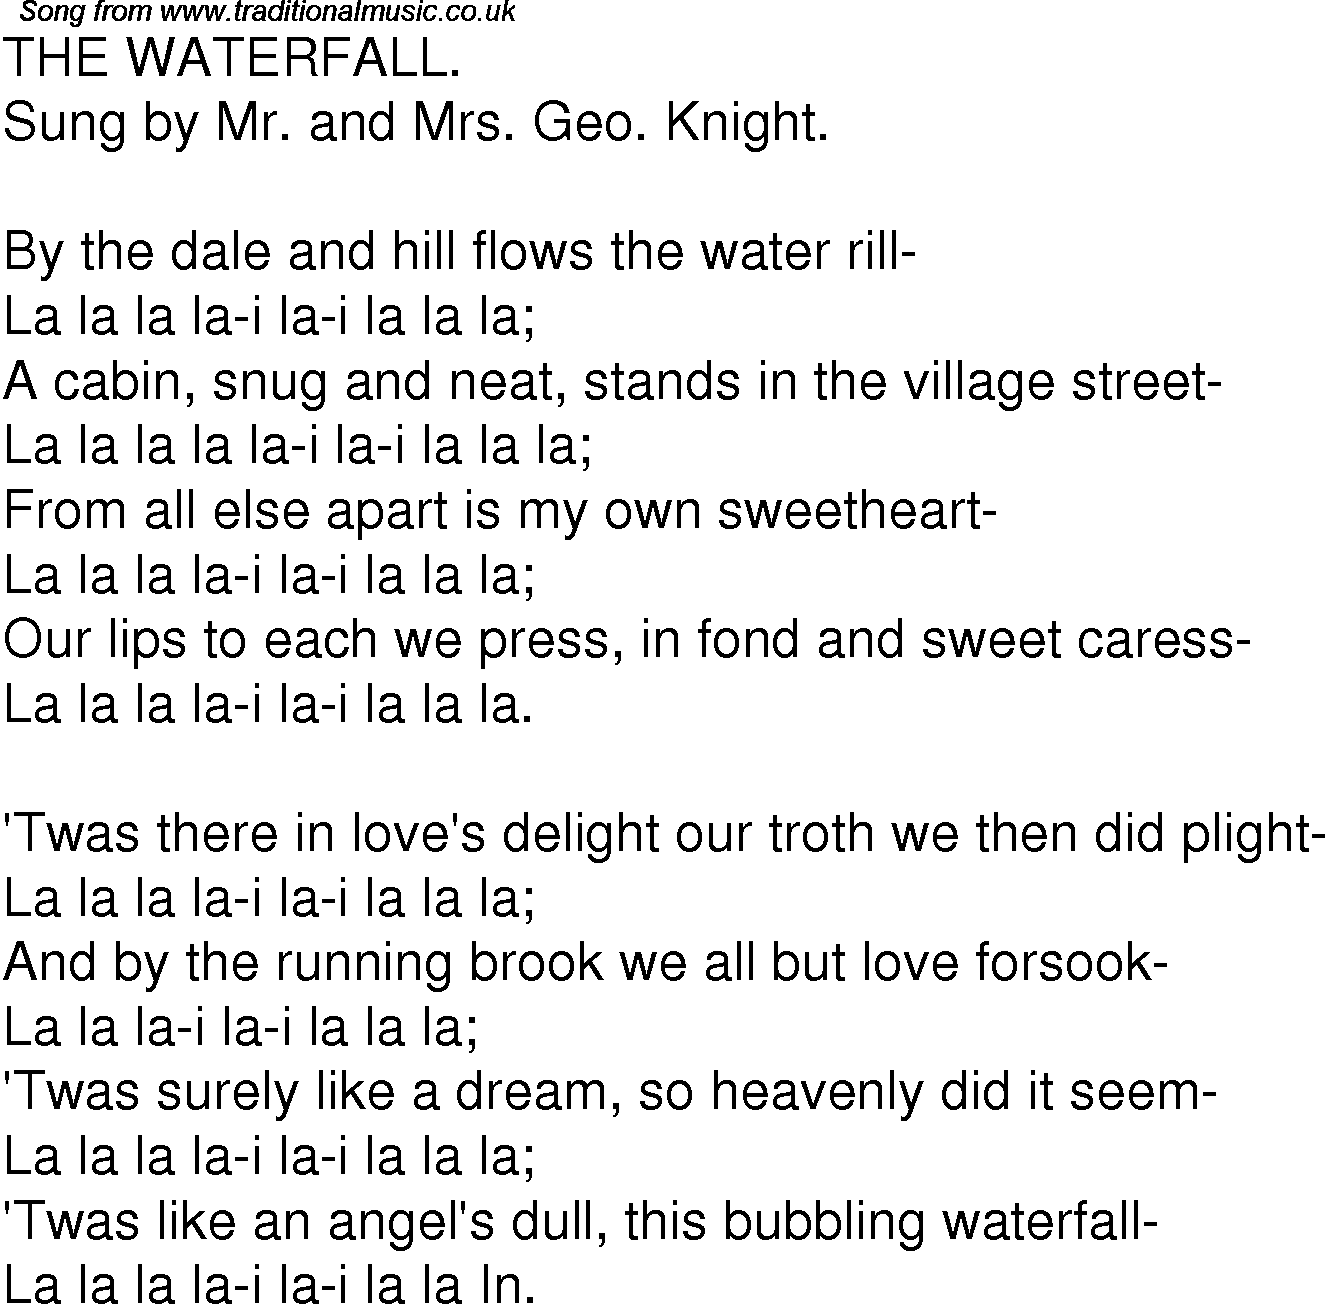 Old Time Song Lyrics For 05 The Waterfall